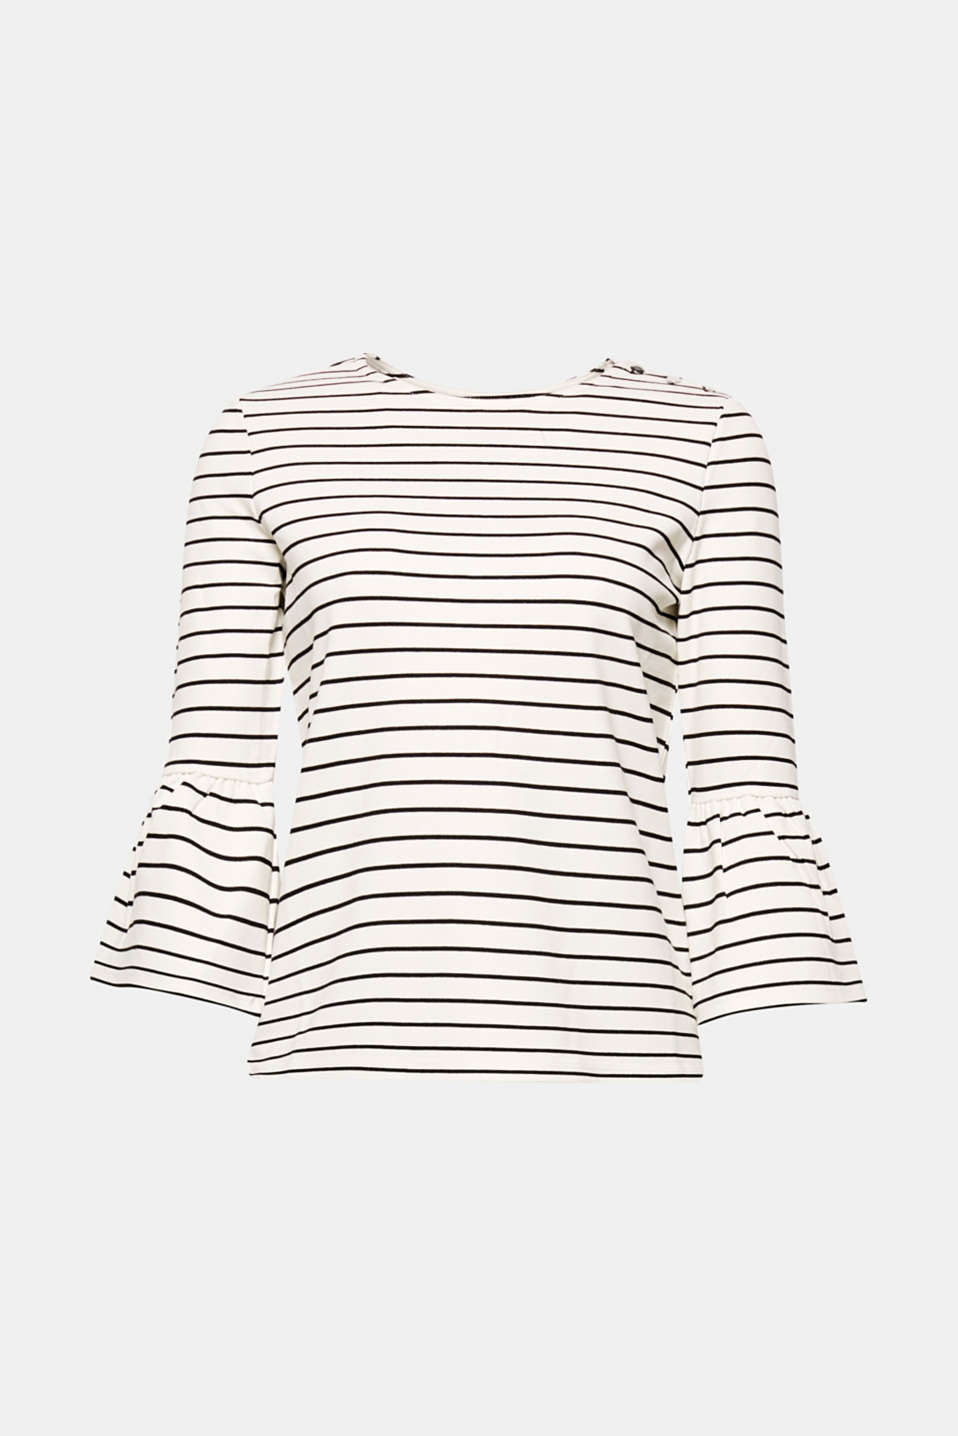 A fashionable classic with a feminine twist: classically striped T-shirt in thick stretchy jersey with flounce sleeves.